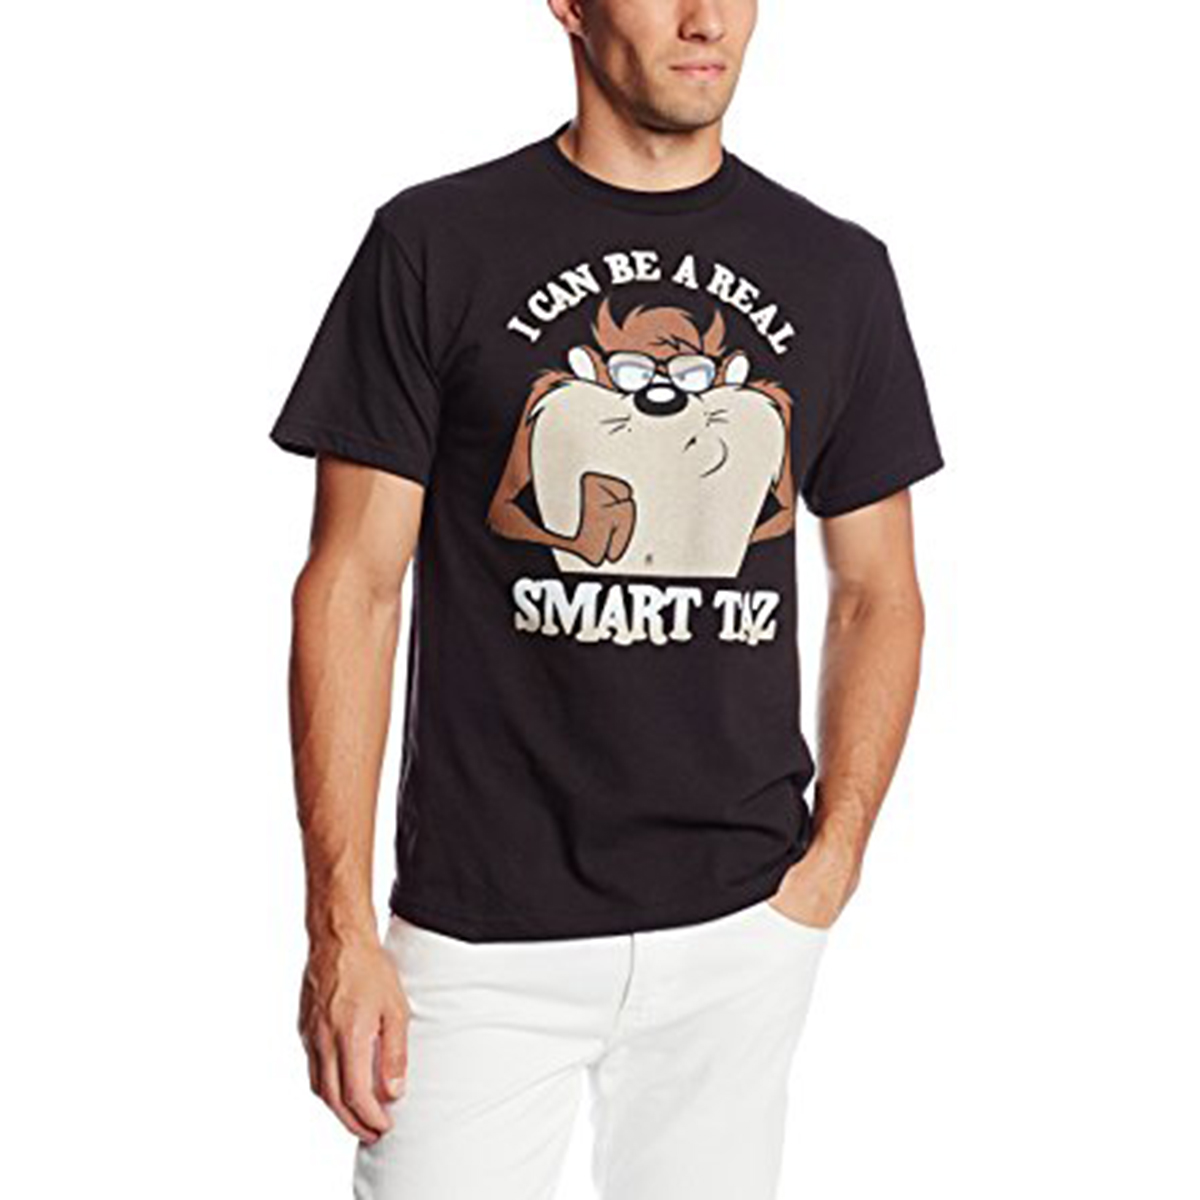 1cc4151c23 Summer Men's Naughty Humor Christmas Funny Cotton Top Shirts Tumblr Printed  O Neck T shirts-in T-Shirts from Men's Clothing on Aliexpress.com | Alibaba  ...